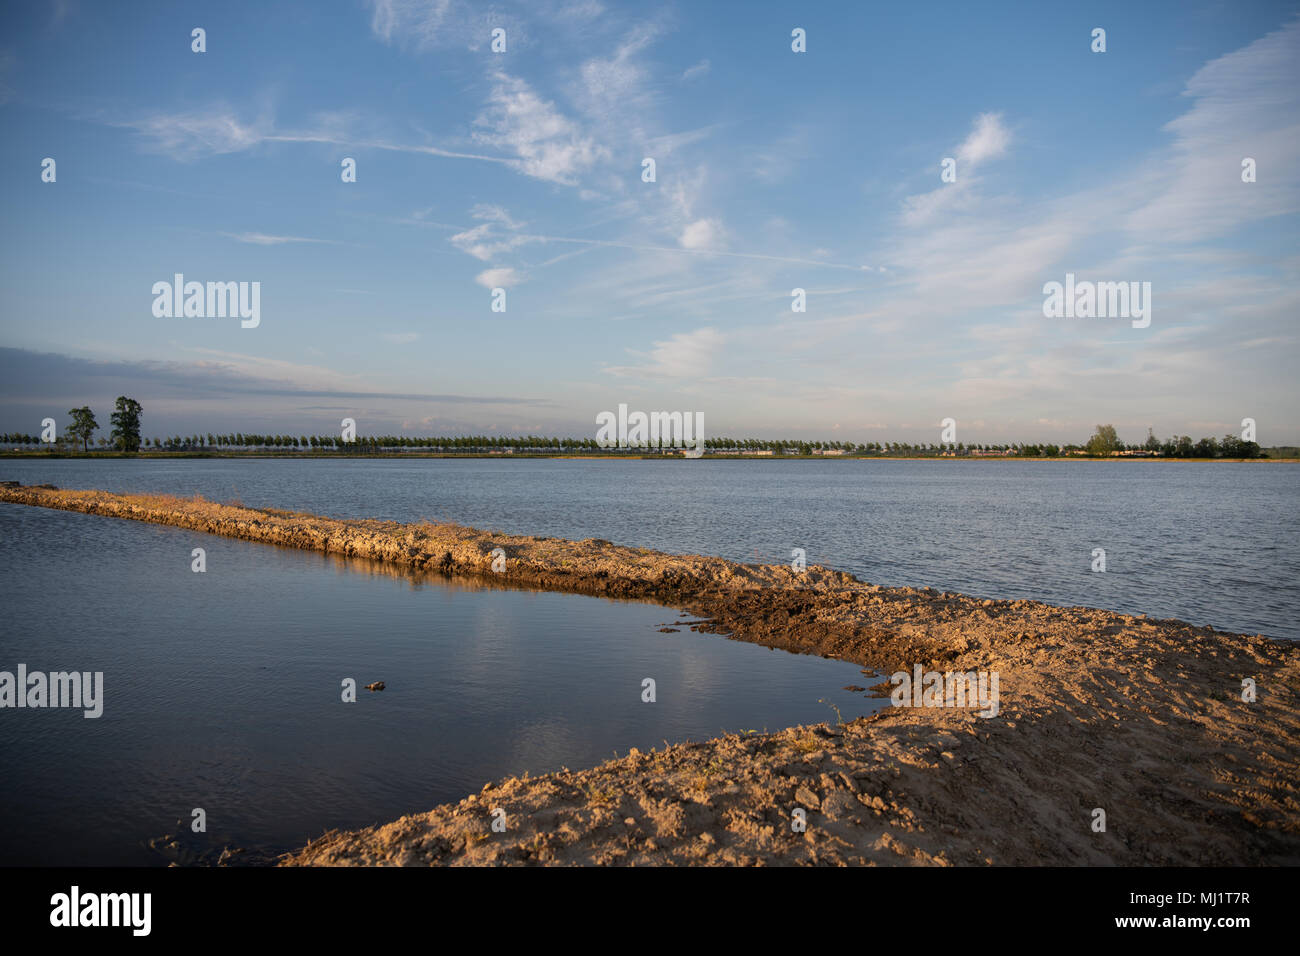 Division of flooded rice paddies in Piedmont, Italy at sunset - Stock Image